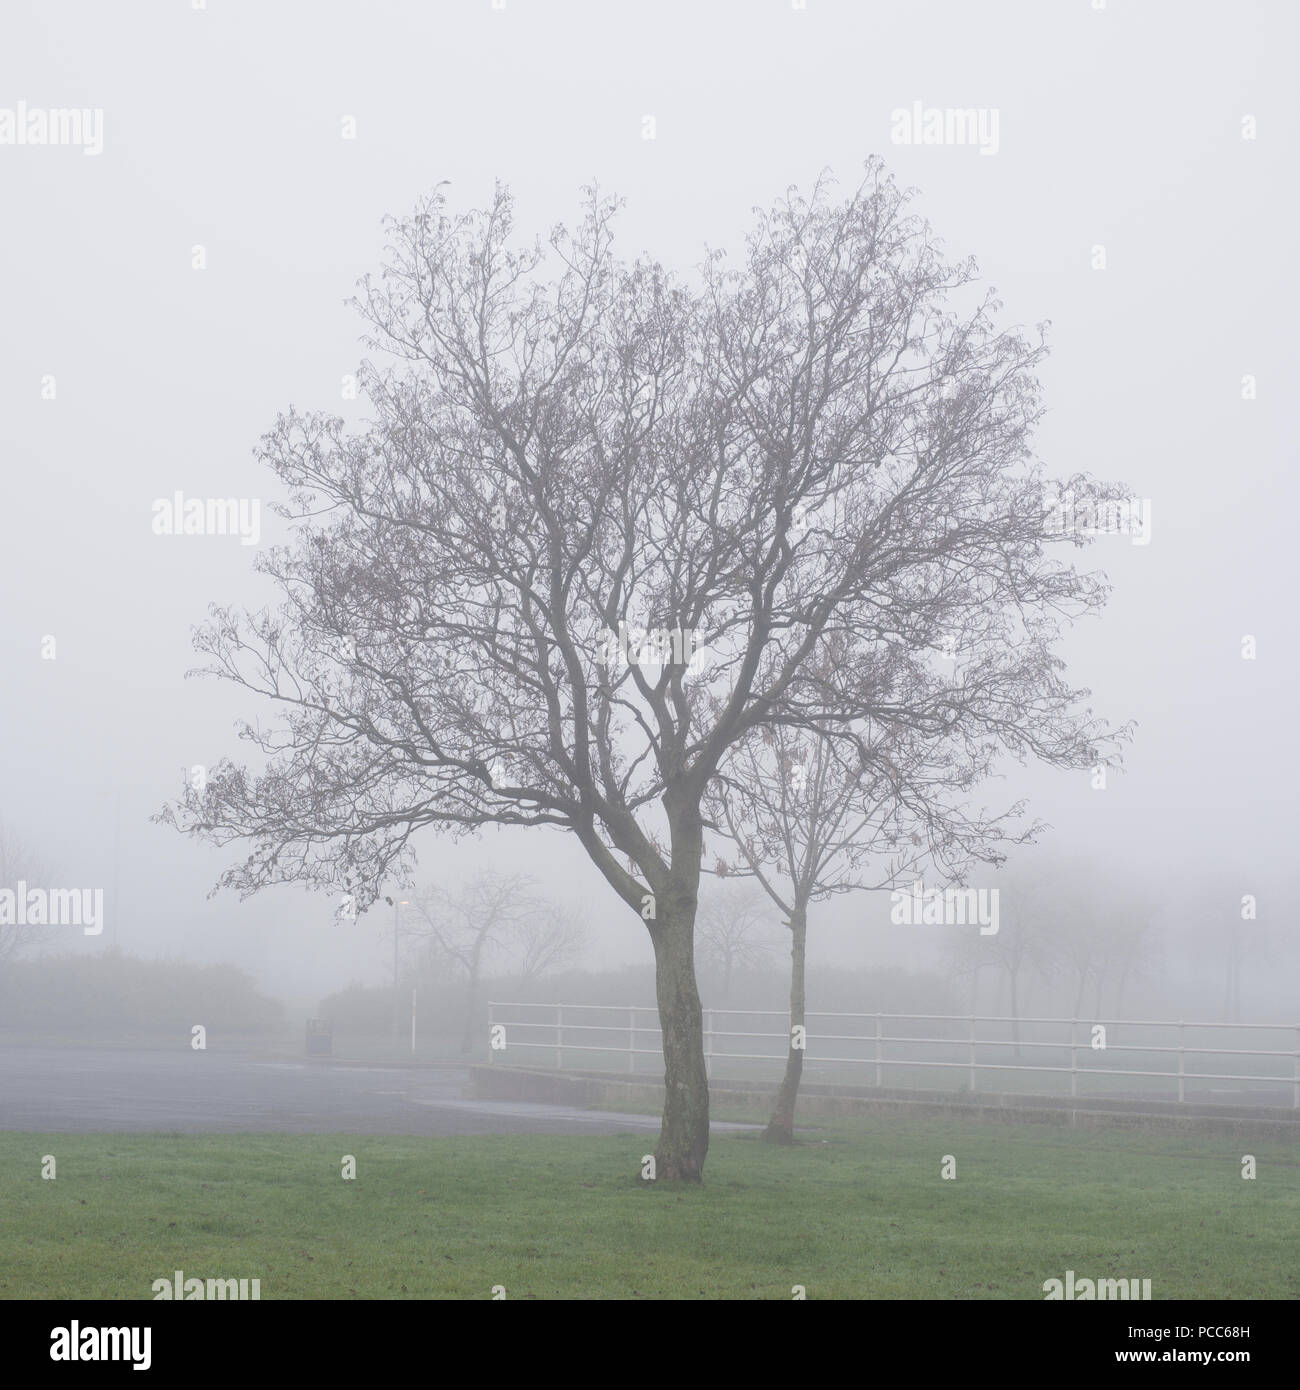 Two Trees in park fog and mist in wilderness woodlands - Stock Image